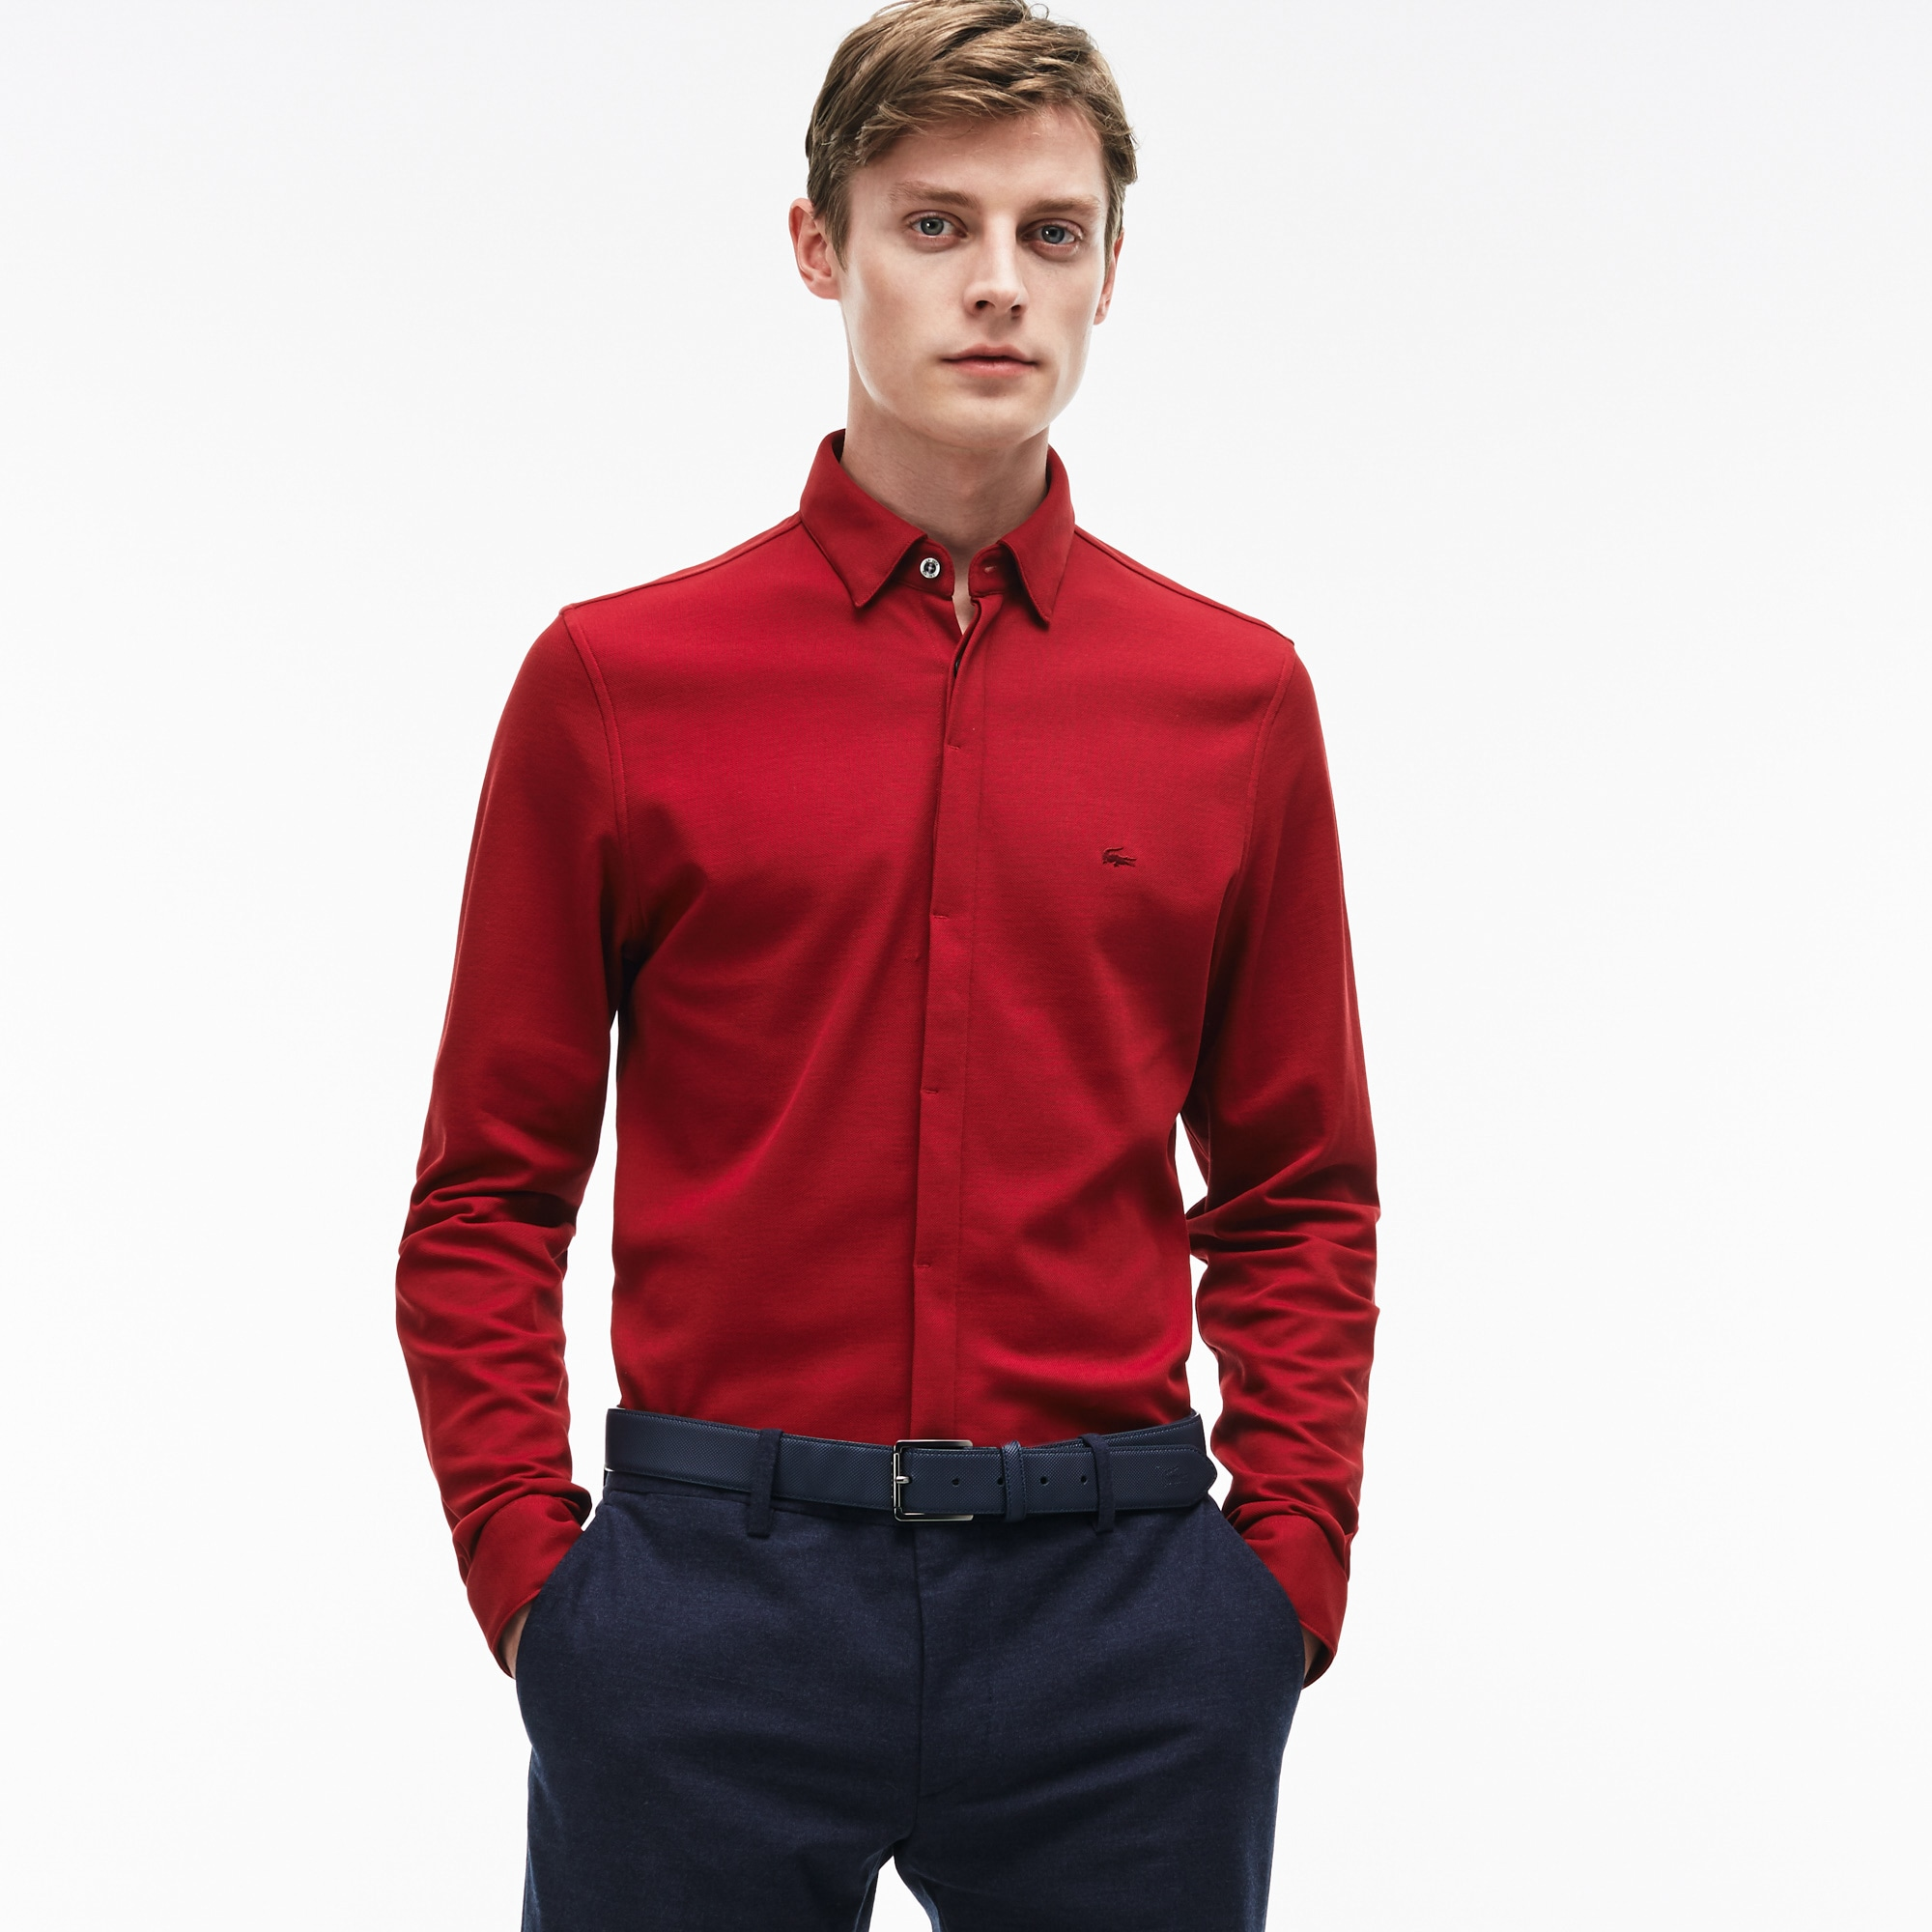 Men's Slim Fit Texturized Cotton Jersey Shirt